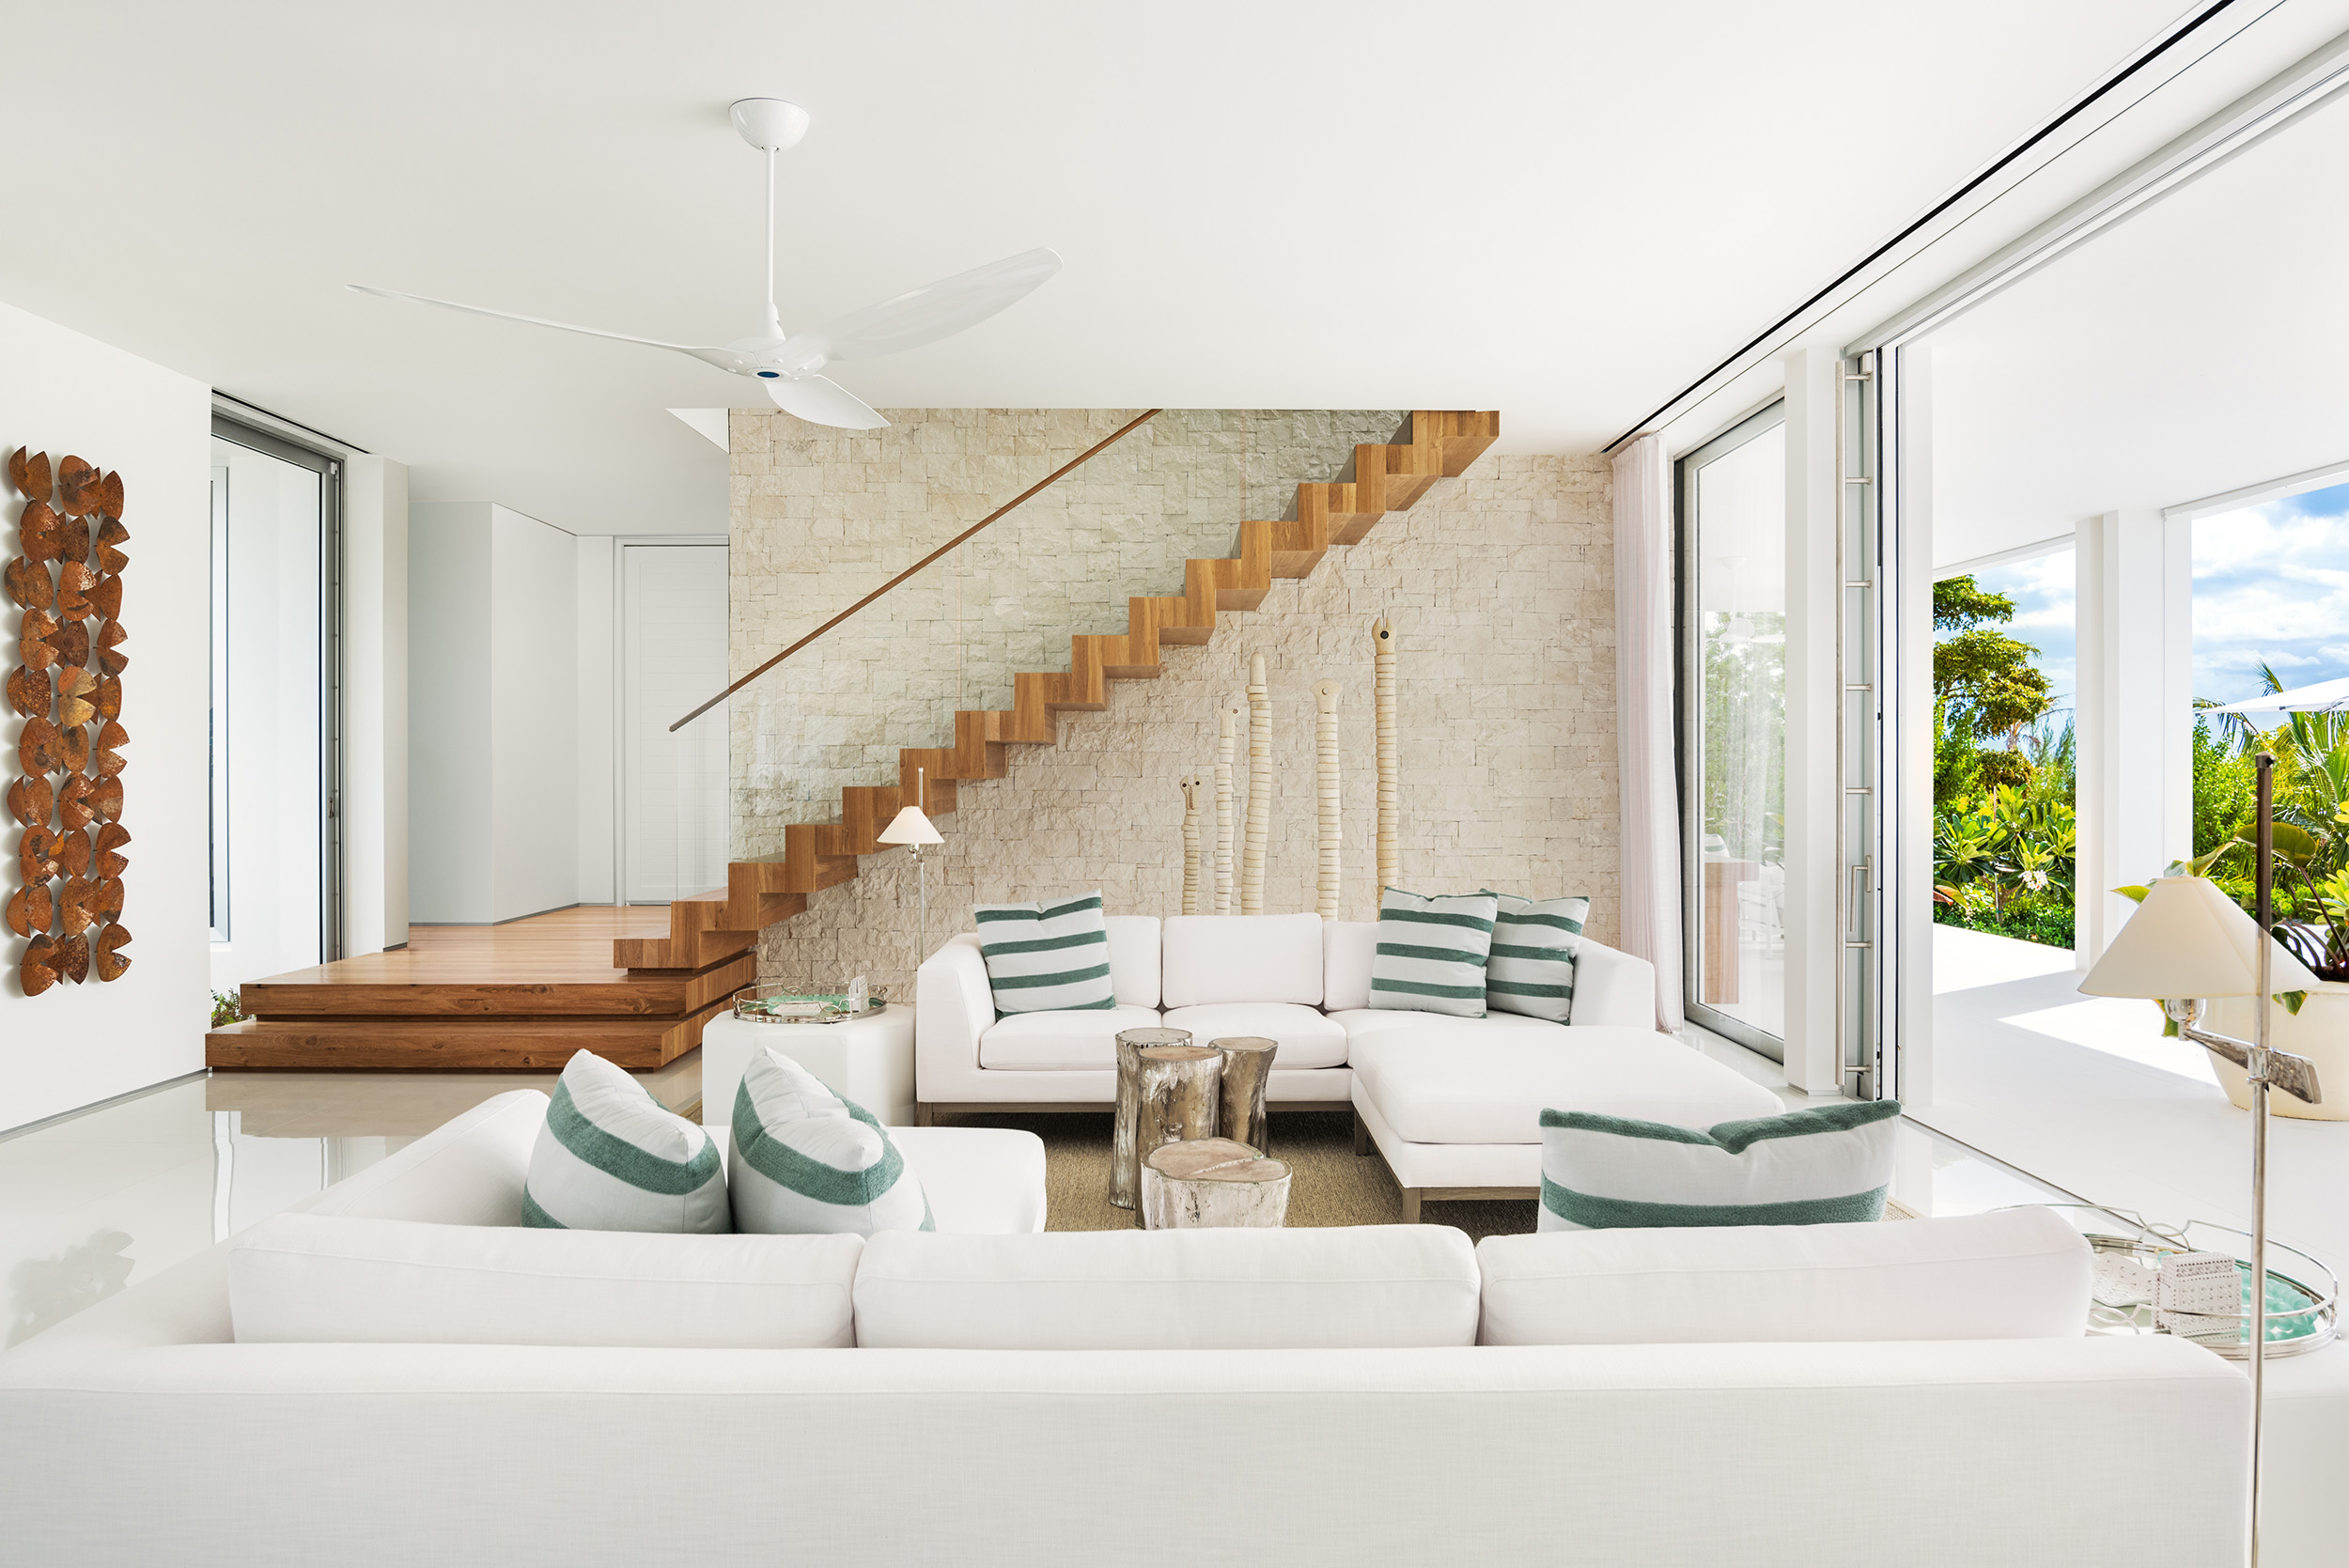 Emerald Pavilion - view of the living area with cantilevered stair